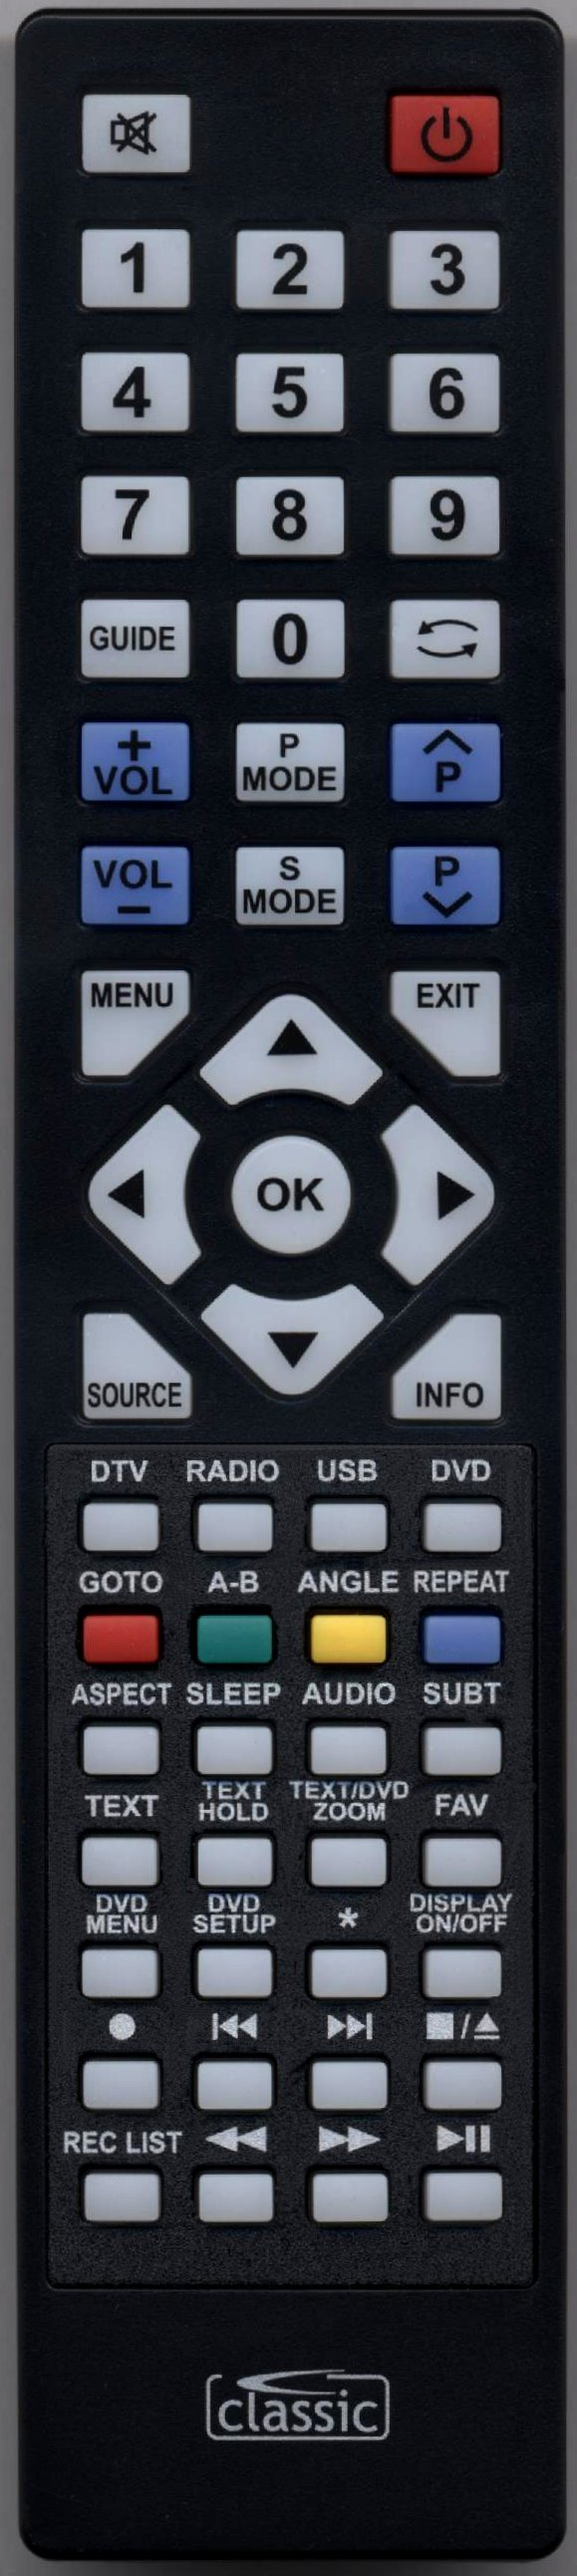 BLAUPUNKT 185/207I-GB-3B-HKUPS-UK Remote Control Alternative